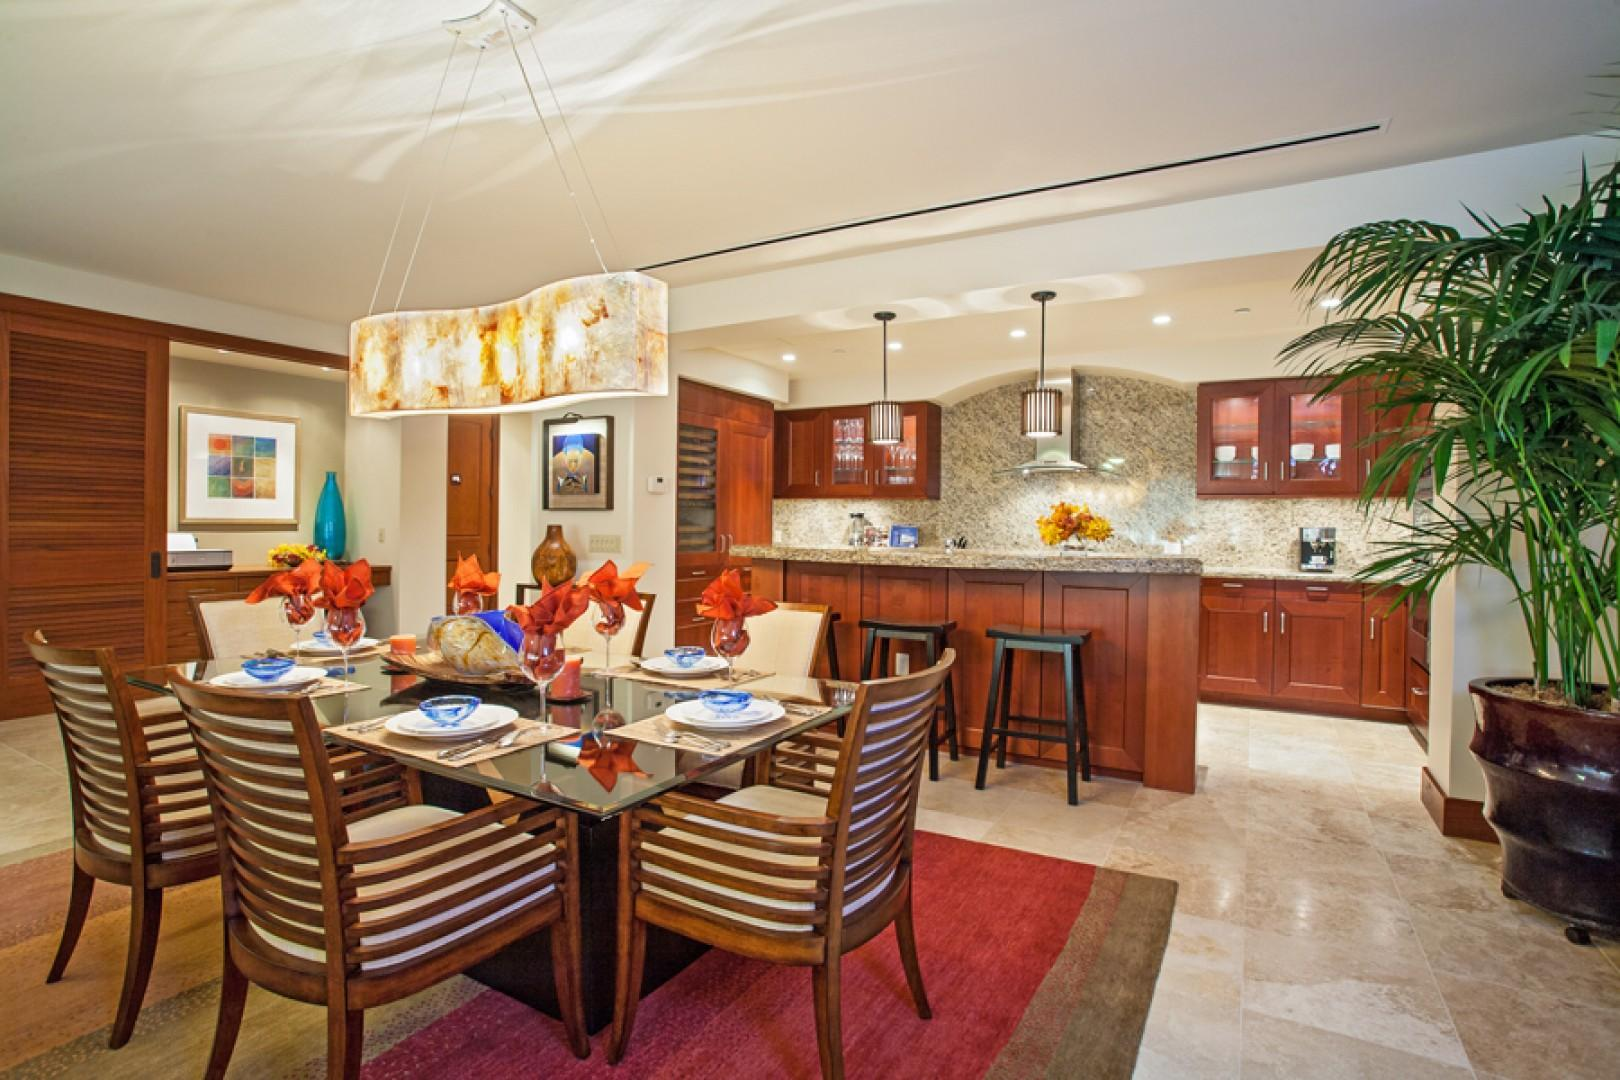 Sun Splash C301 Indoor Dining For Six with Three Bar Stools at the Kitchen Island